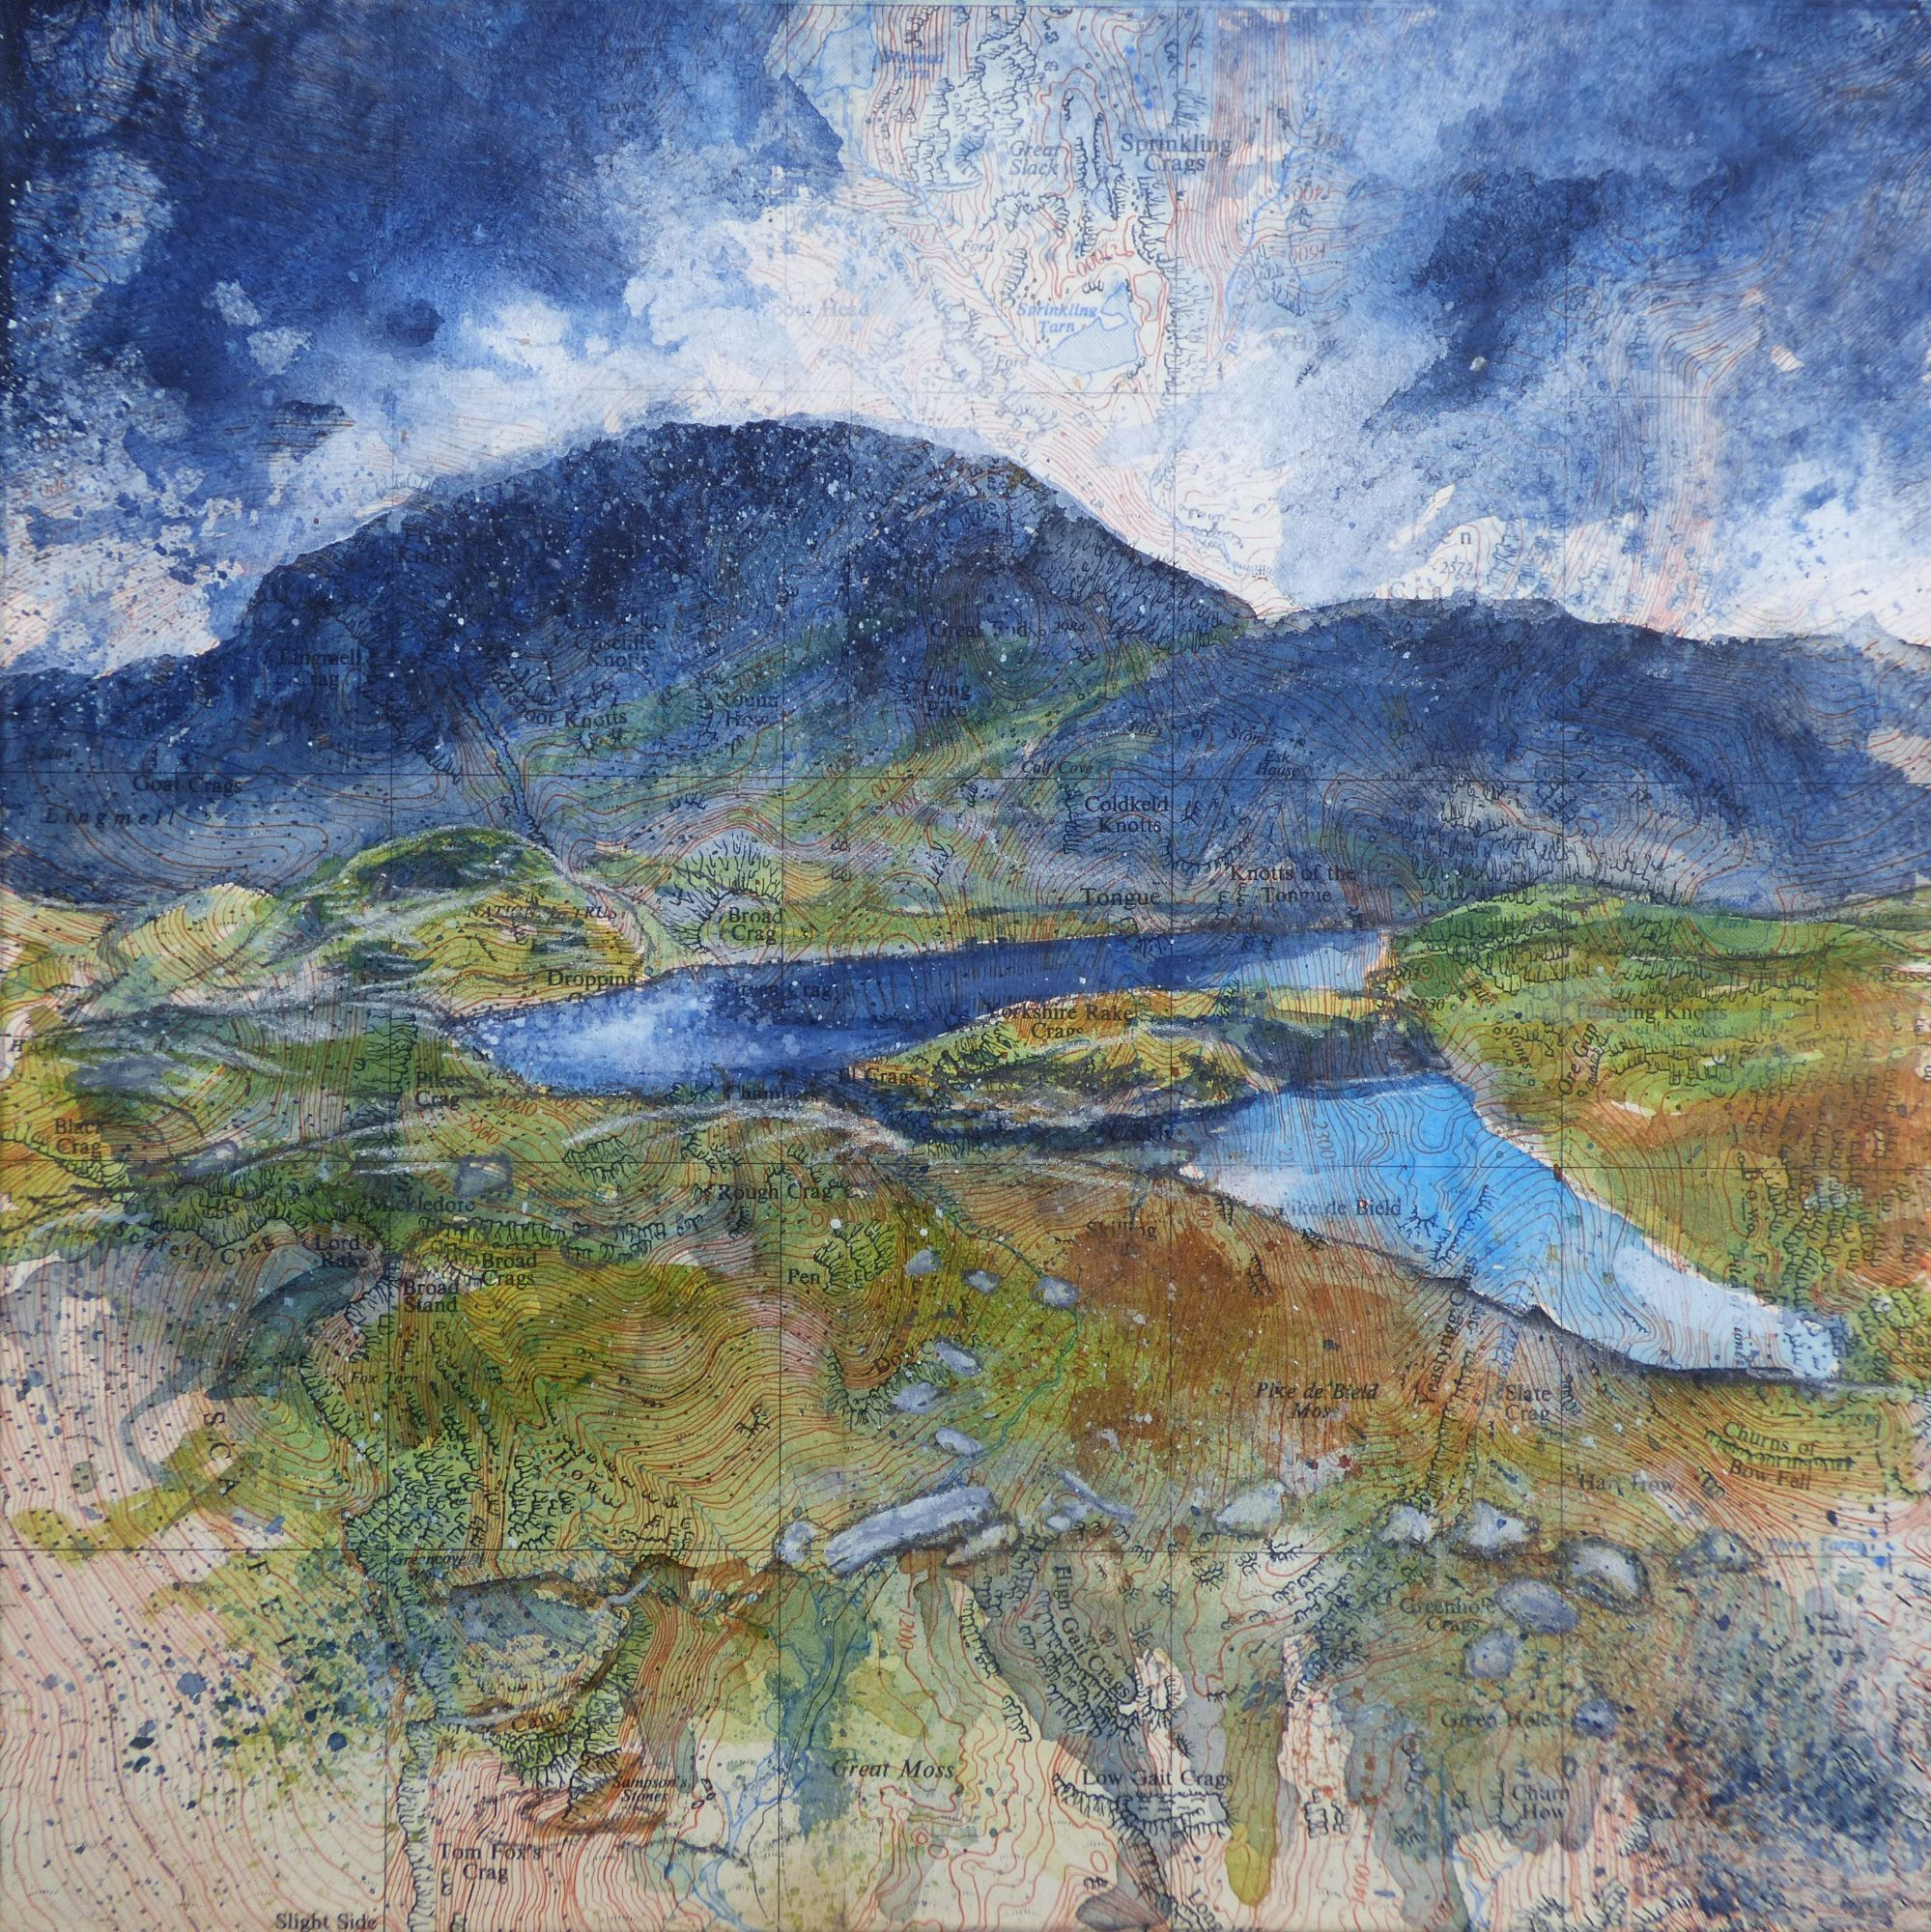 Sprinkling Tarn and Great End £420